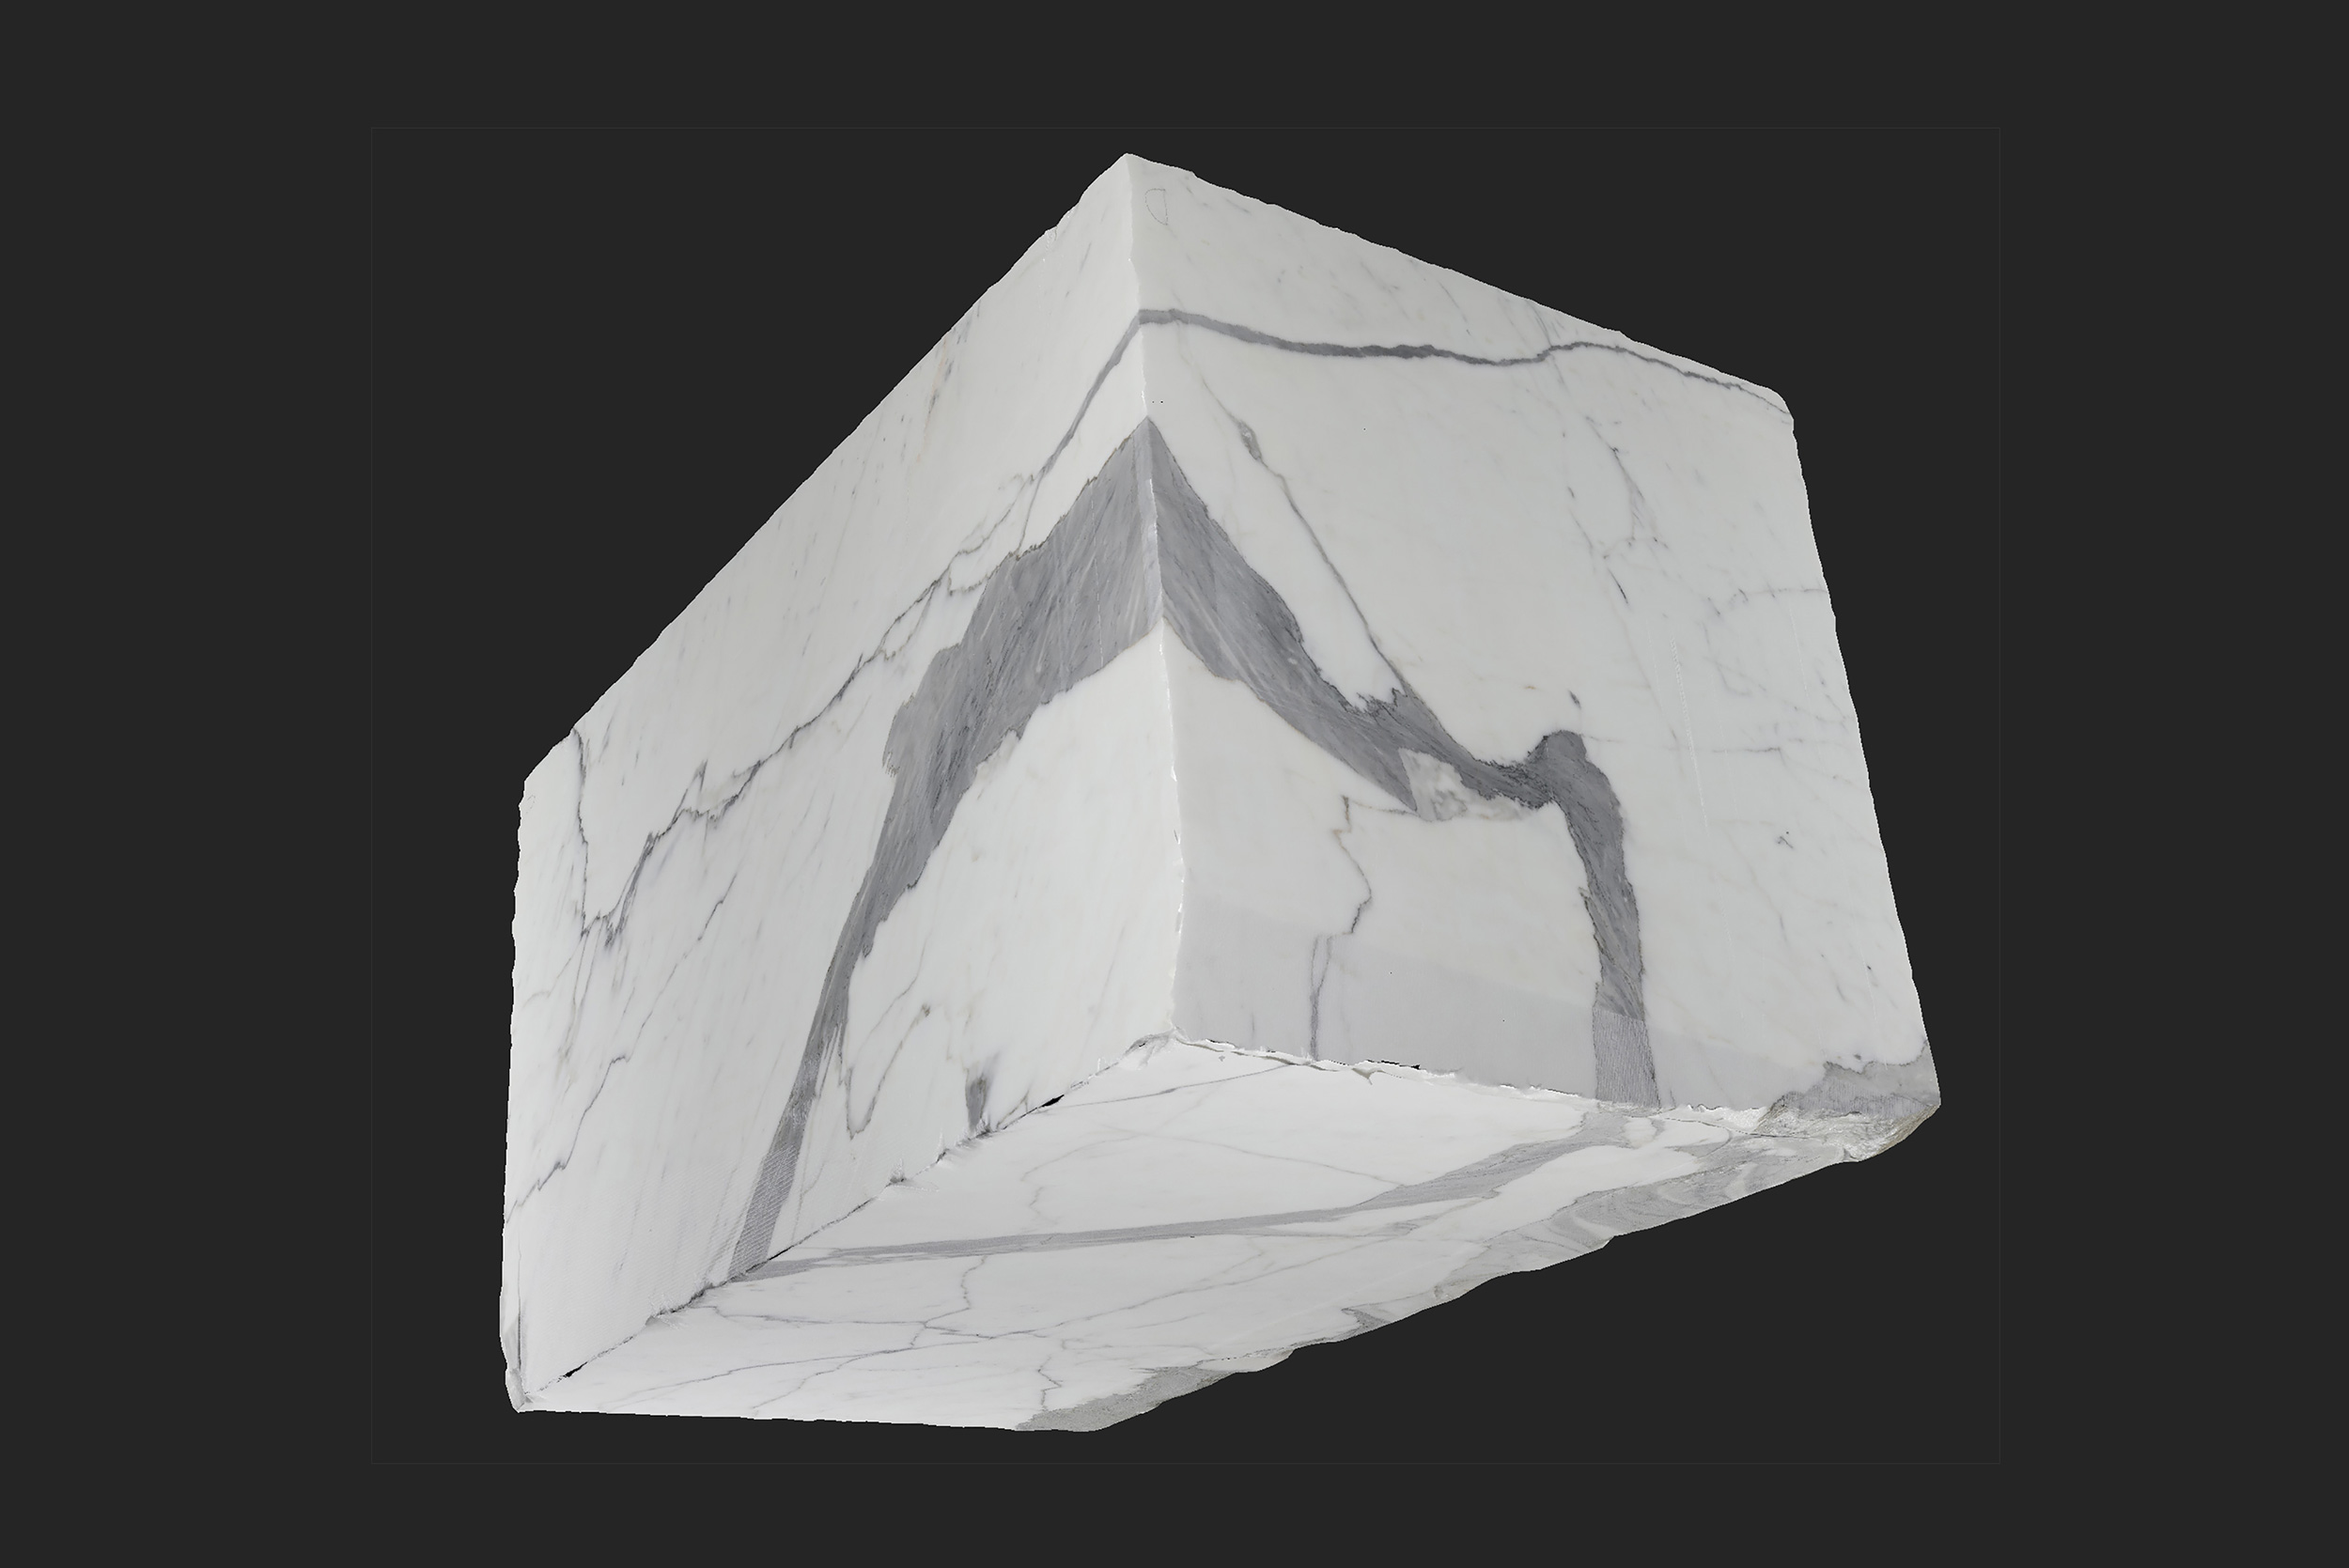 Project 1.1 – 3D Marble Blocks